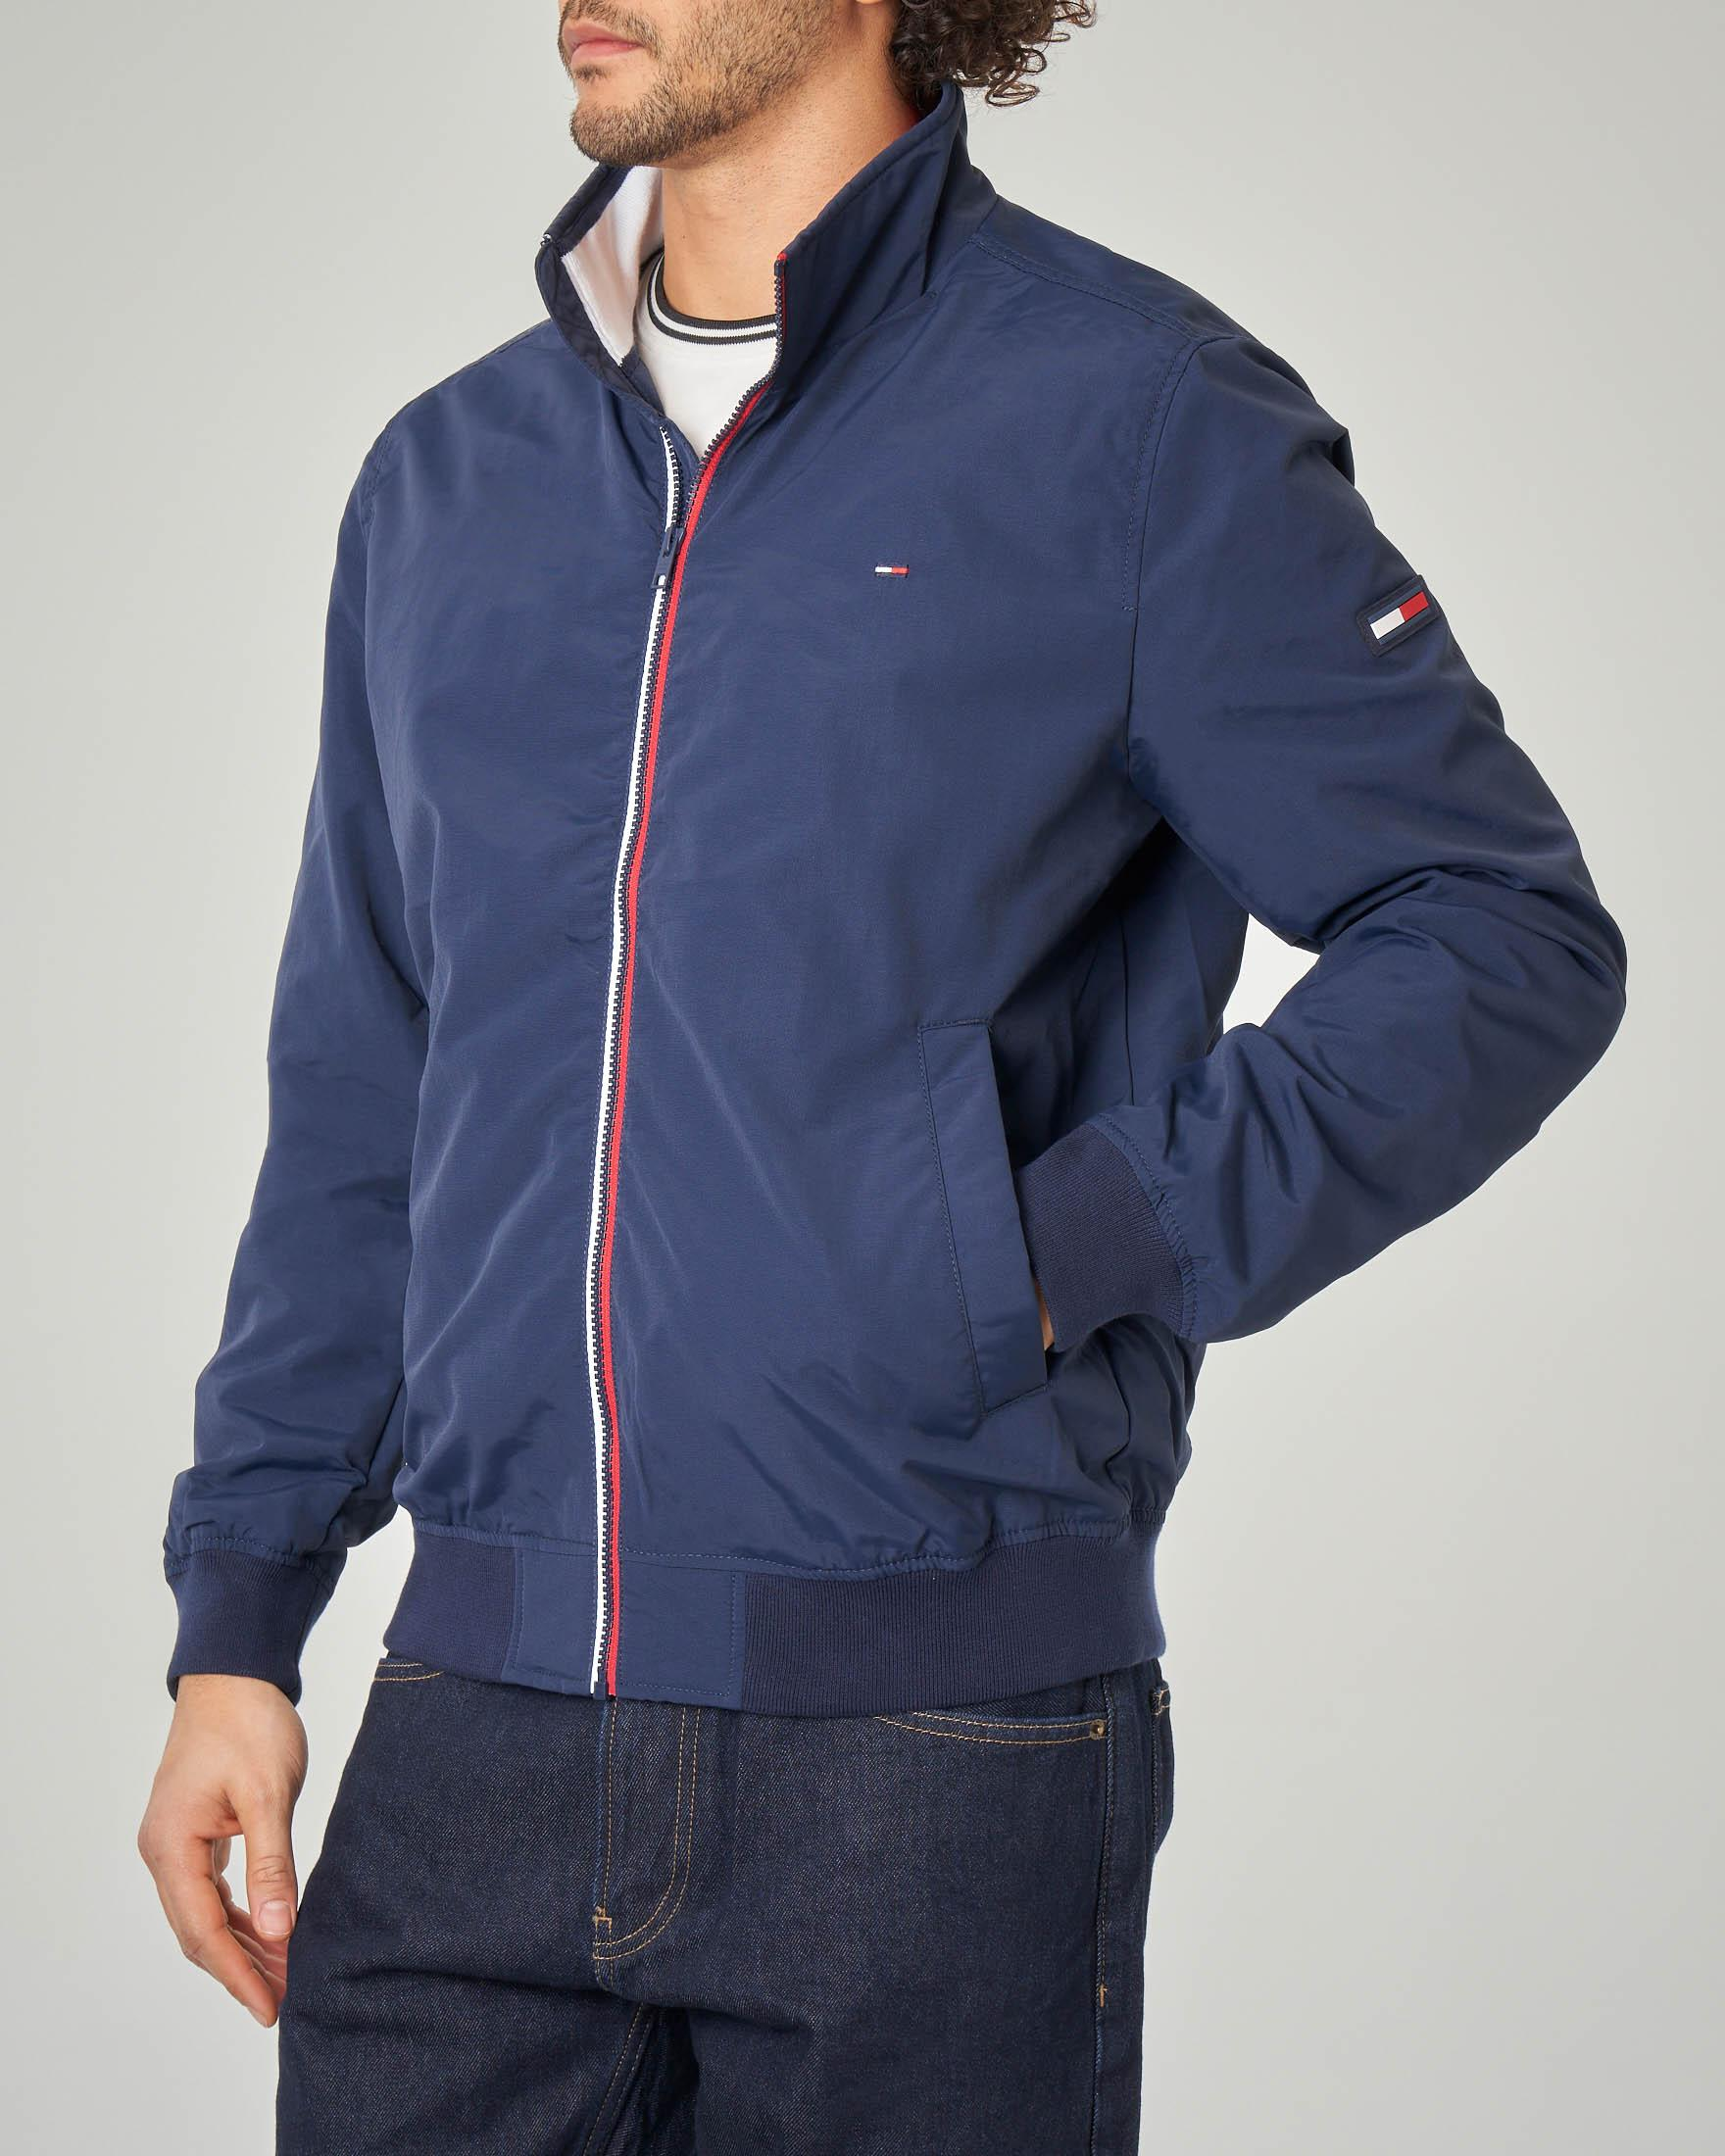 Giacca sailor blu con zip in contrasto